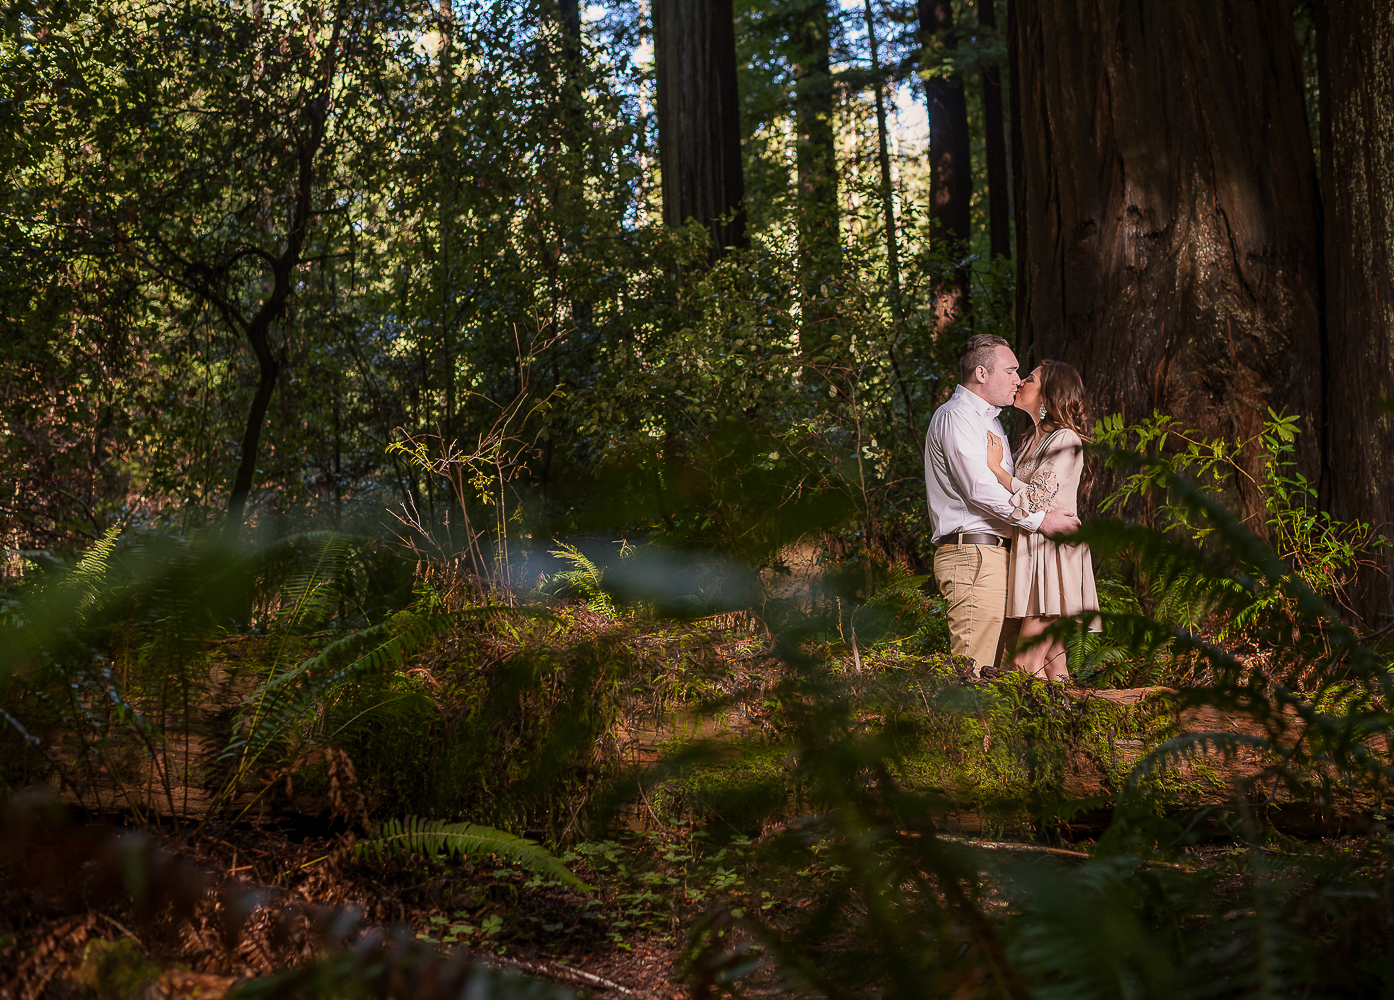 Parky's Pics Wedding & Portrait Photography 2017-Humboldt County Wedding Photographer-4.jpg